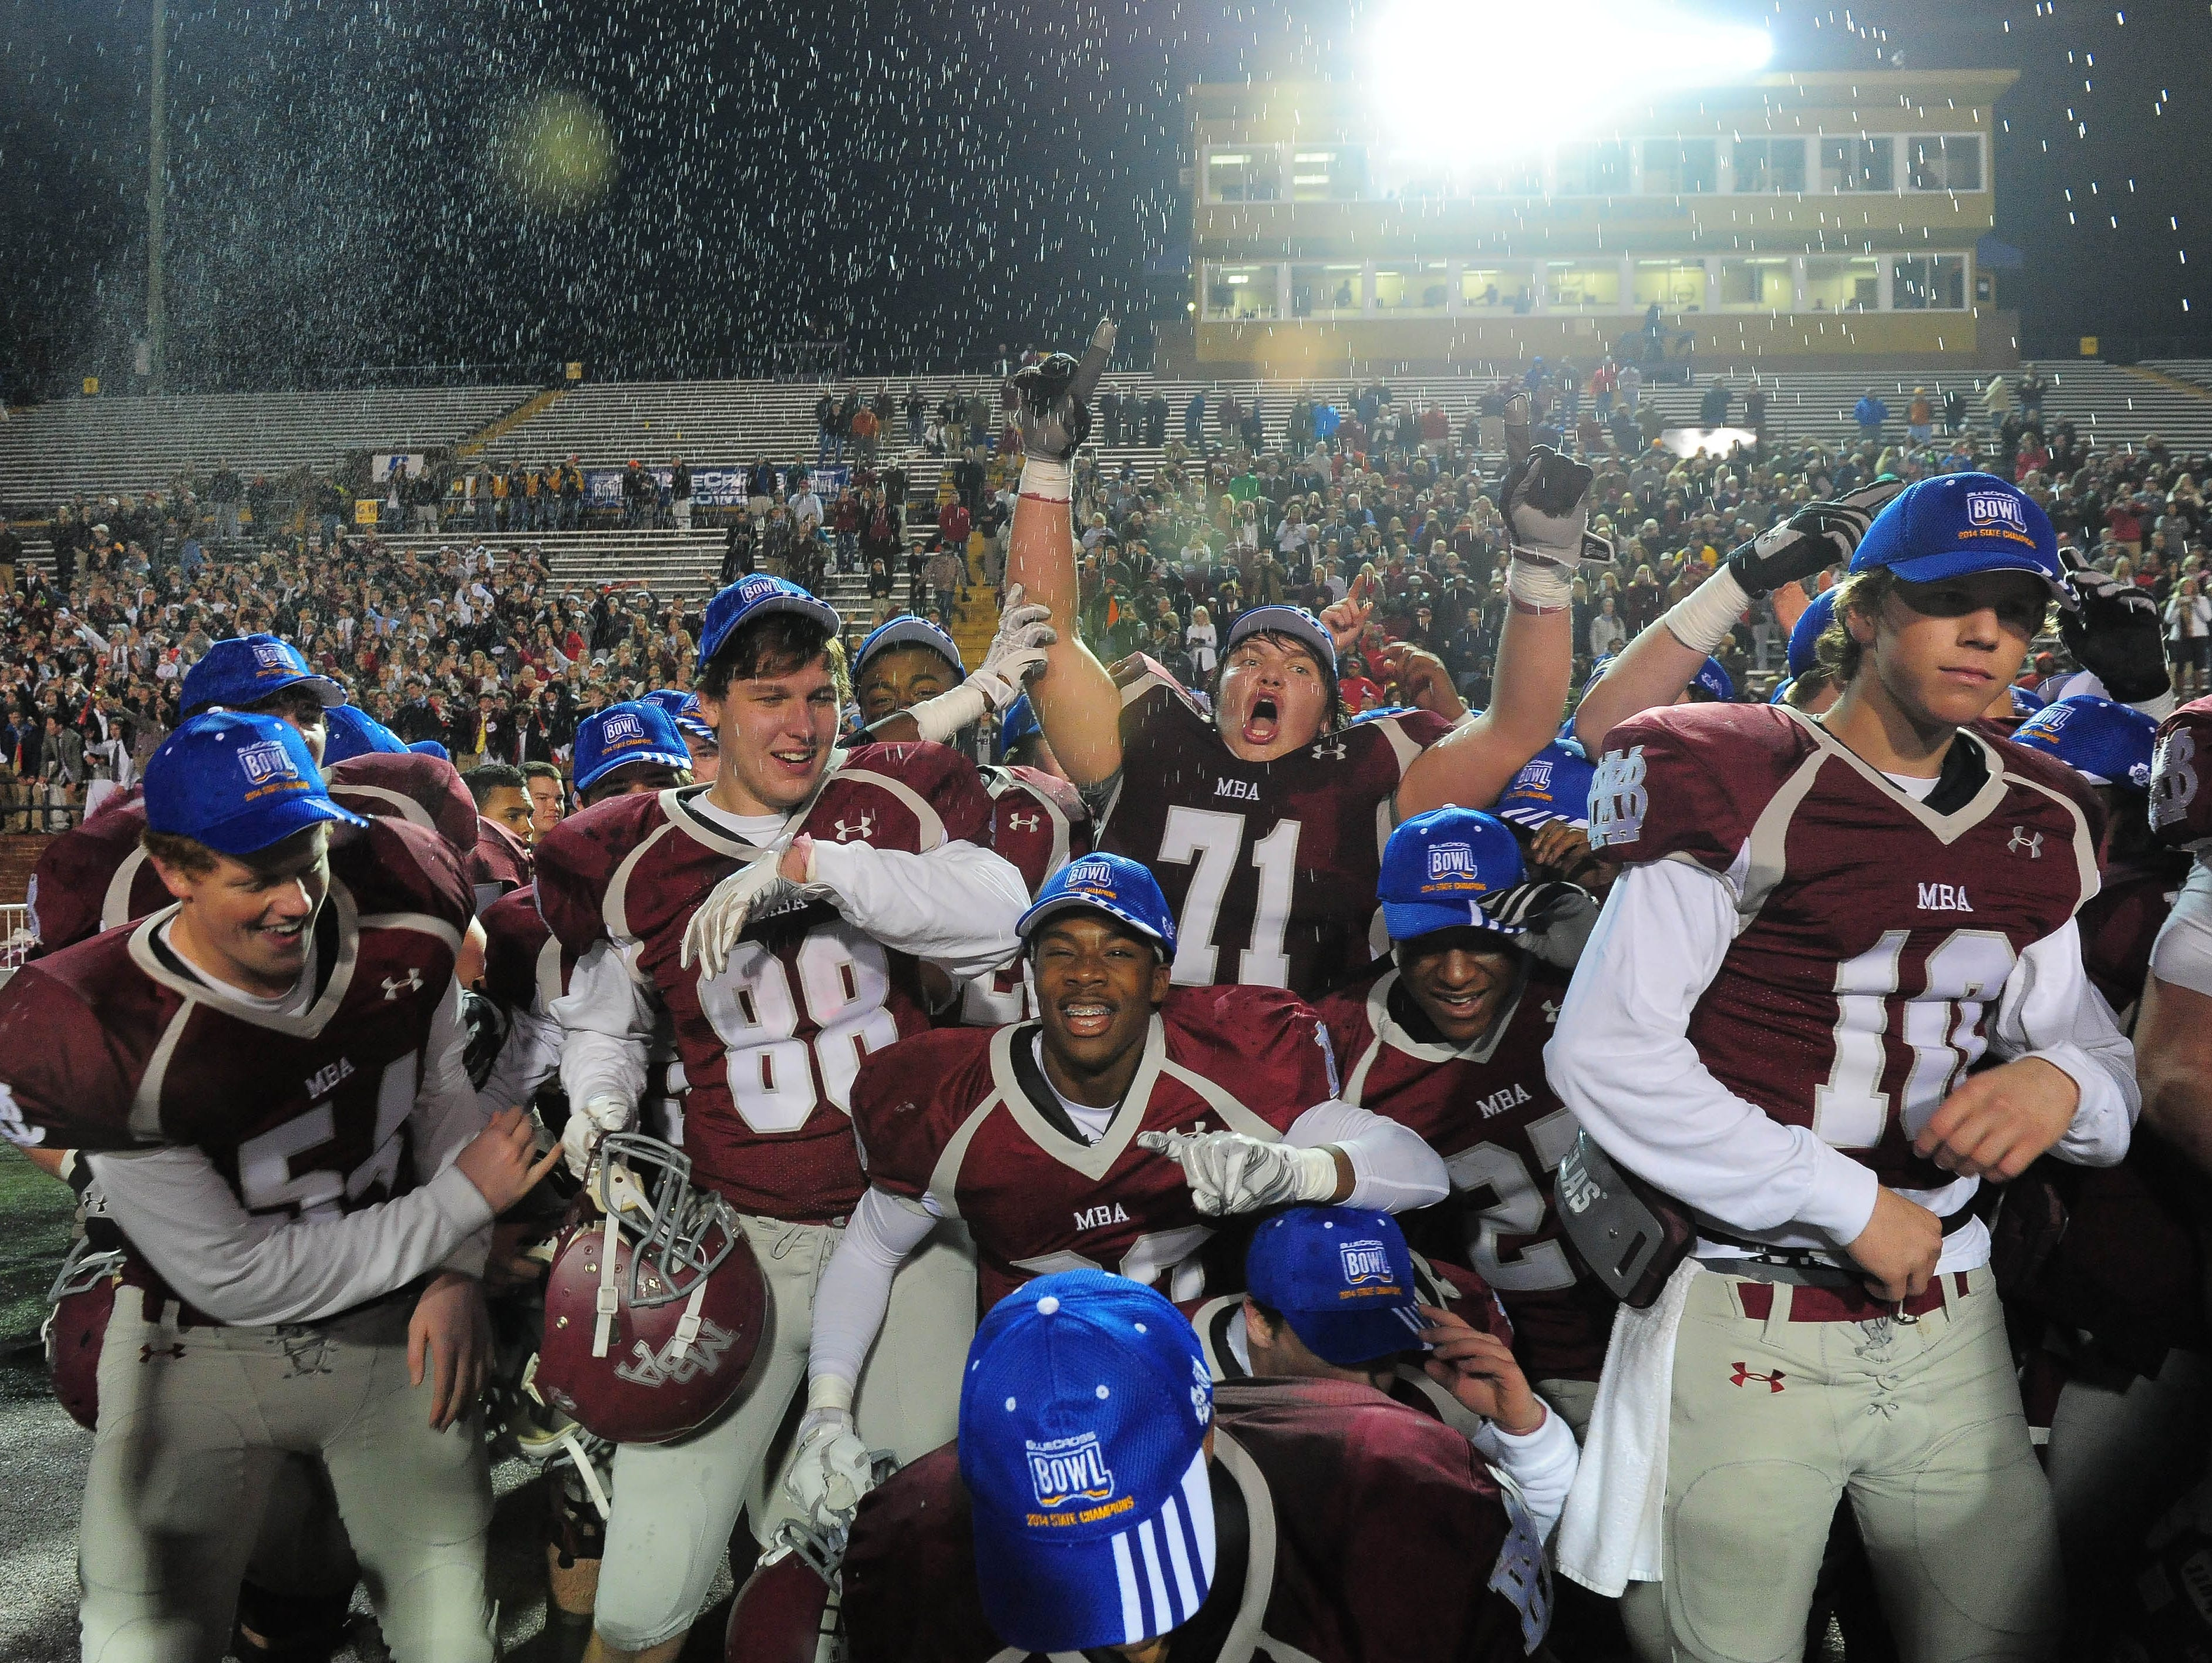 Montgomery Bell Academy player s celebrate their 2014 BlueCross Bowl win over Ensworth.